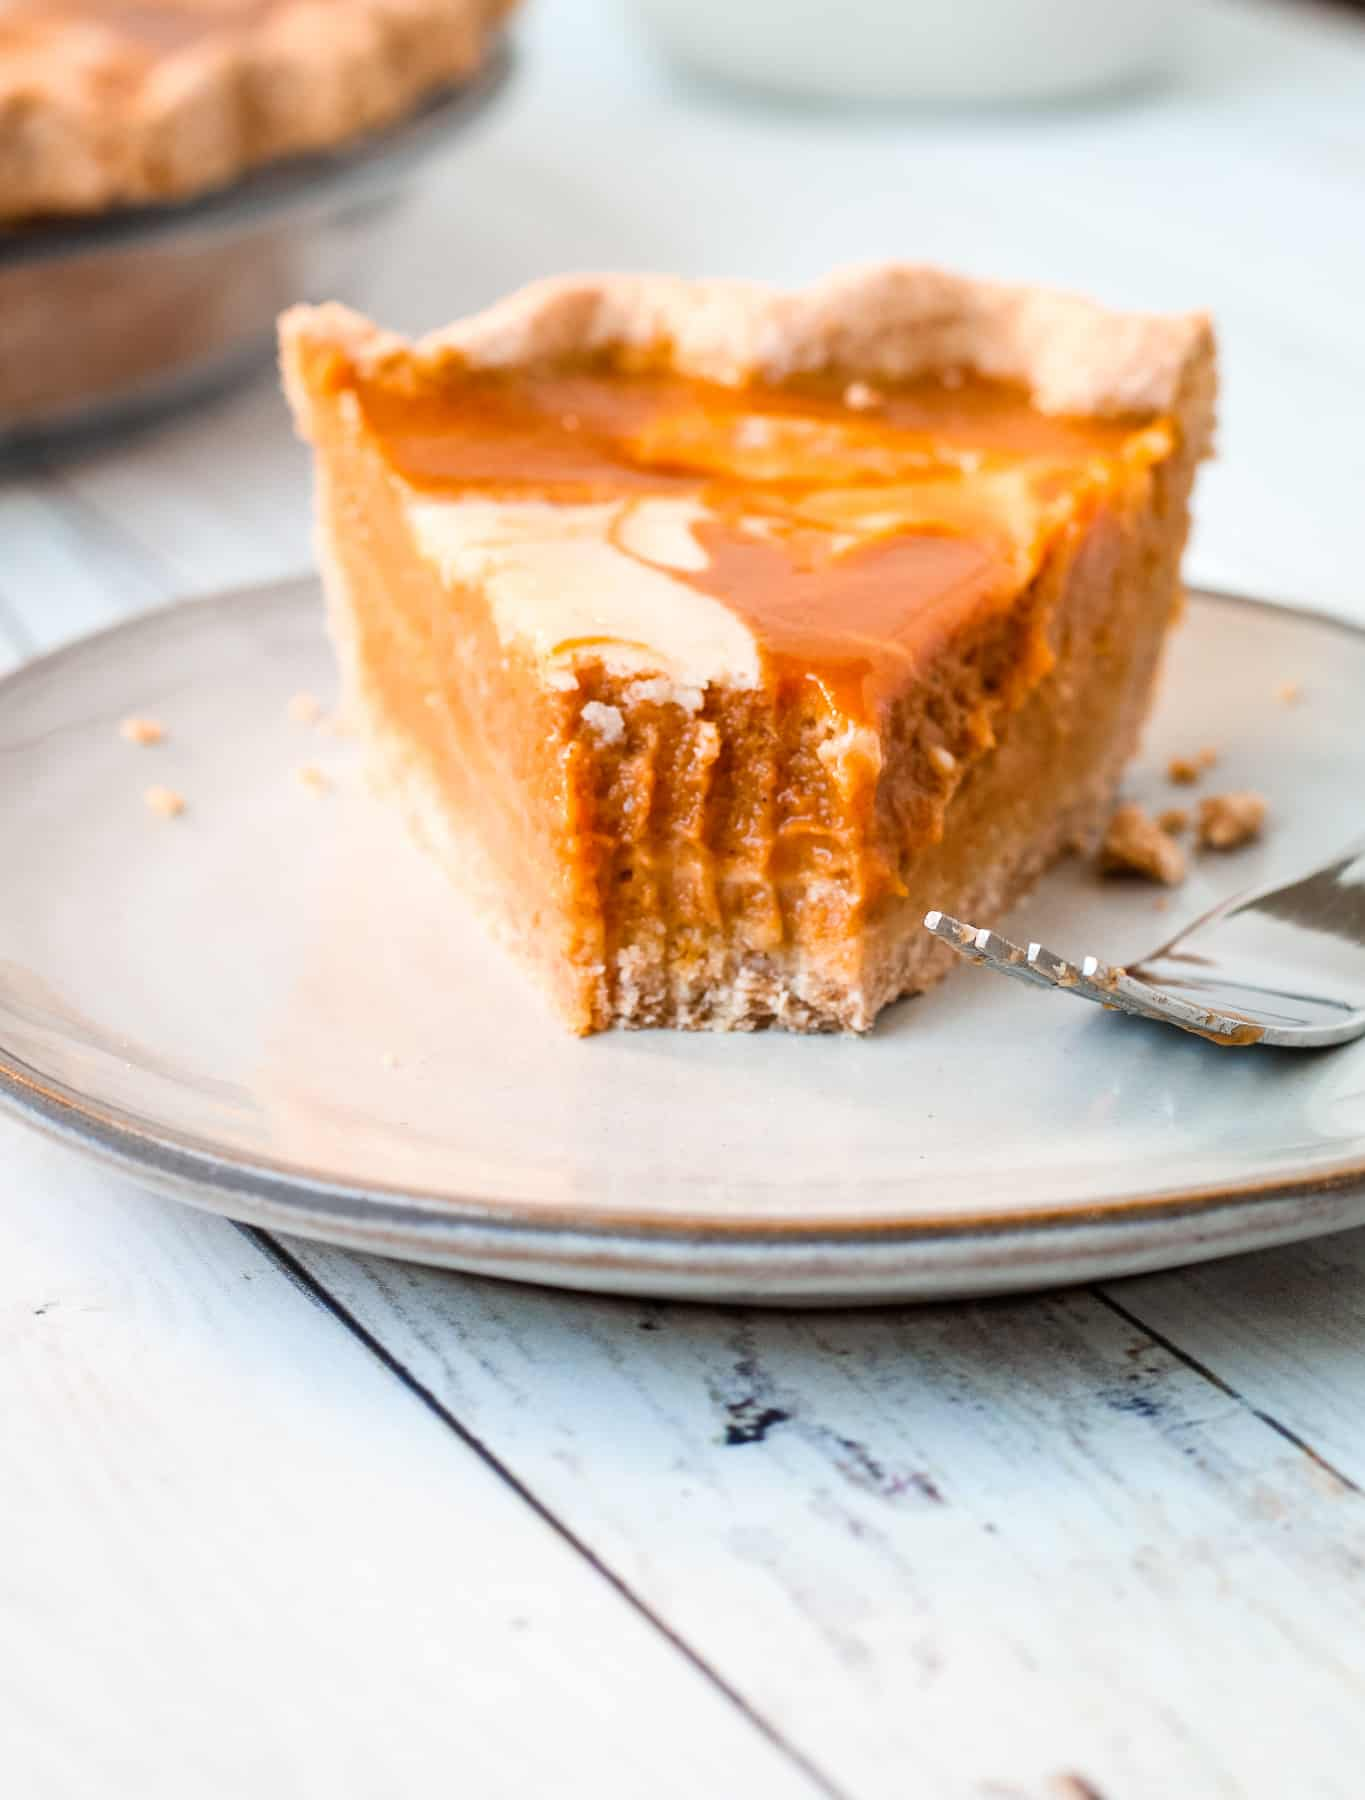 Pumpkin Mascarpone Pie with a bite taken out of it.